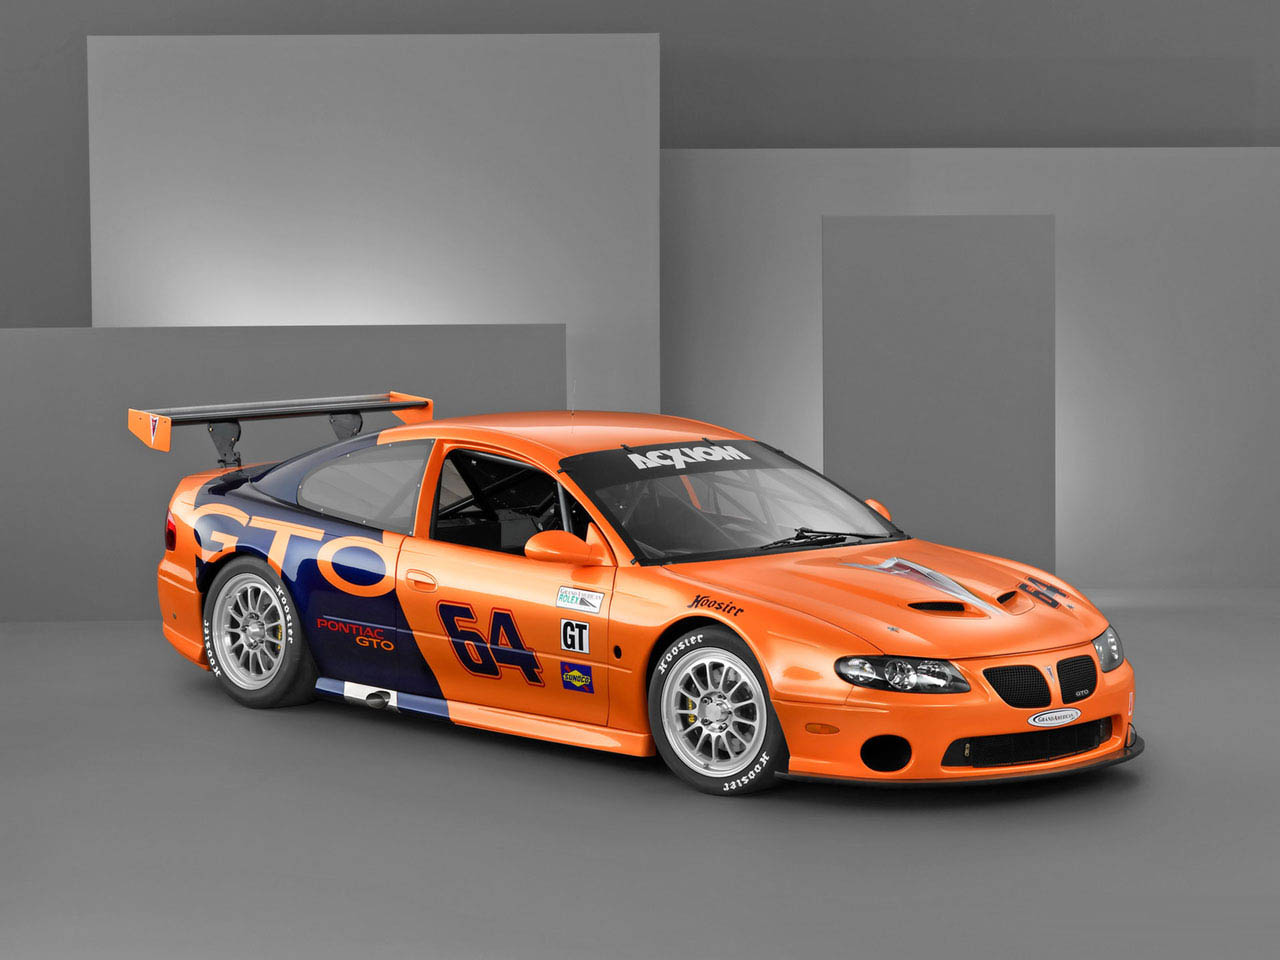 Racing car wallpaper |Cars Wallpapers And Pictures car images,car ...